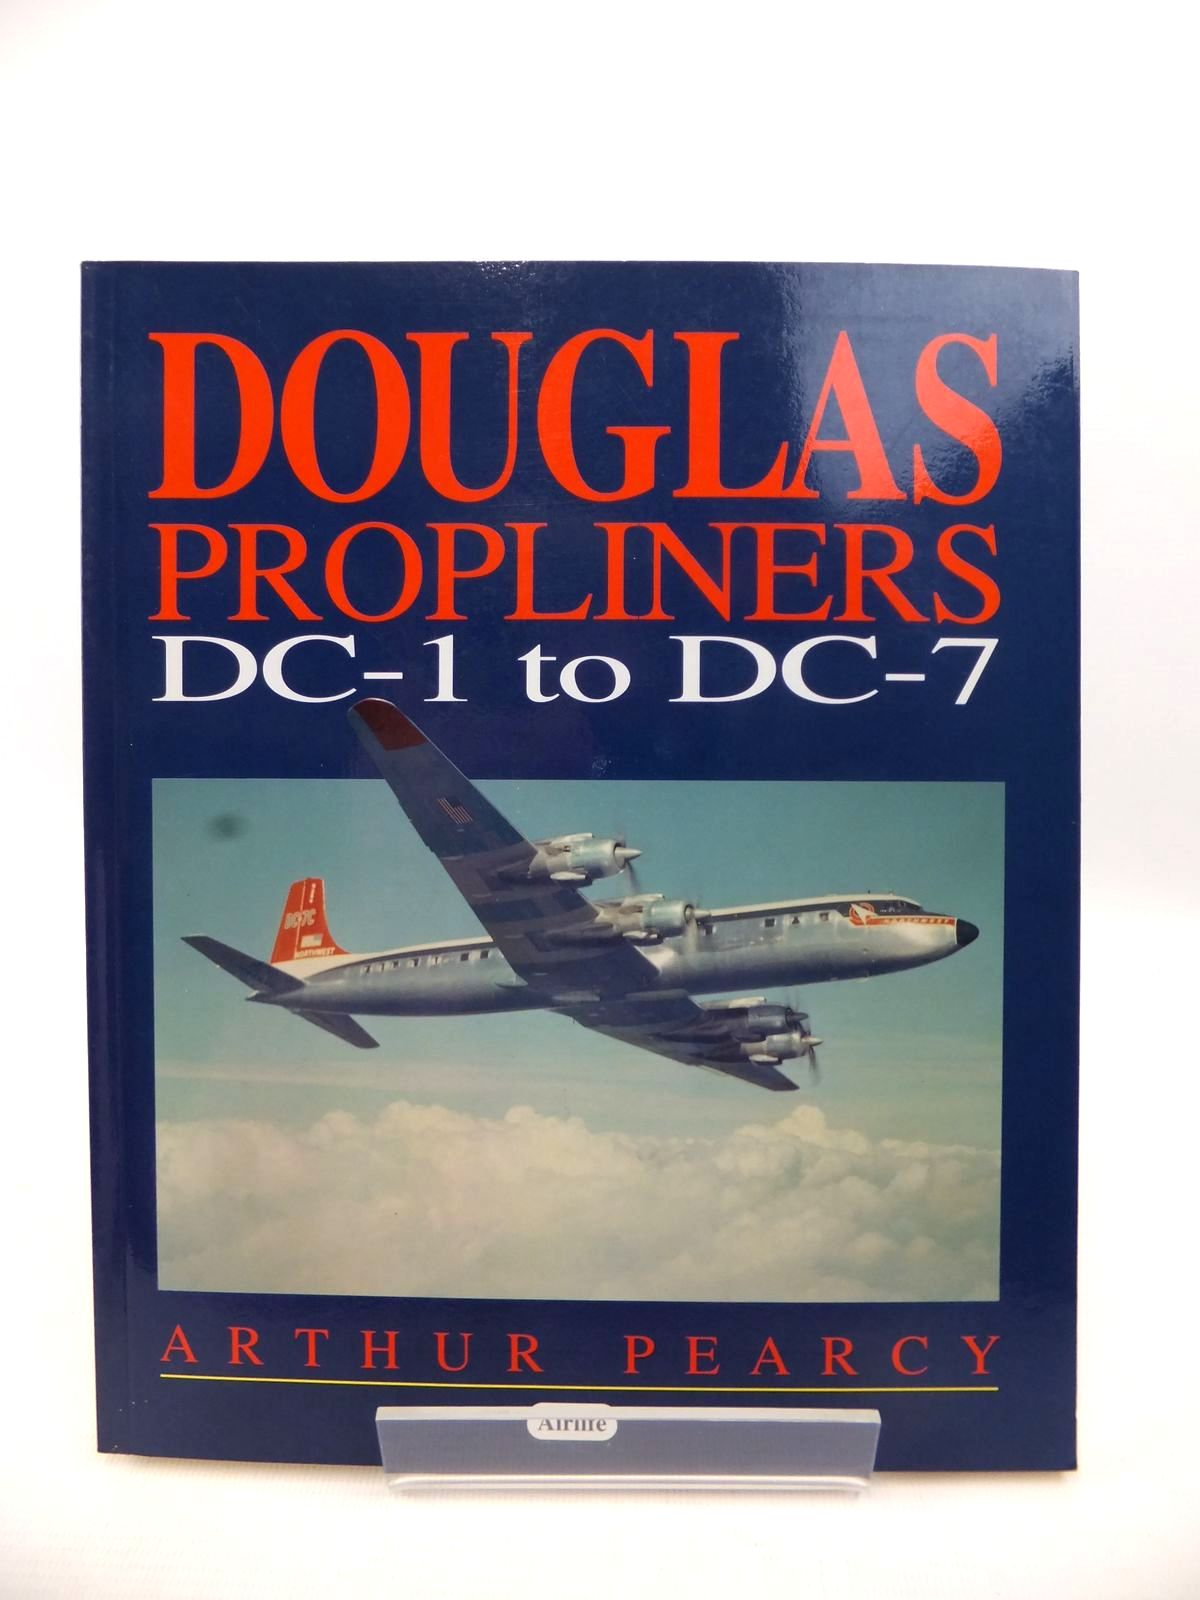 Photo of DOUGLAS PROPLINERS DC-1 TO DC-7 written by Pearcy, Arthur published by Airlife (STOCK CODE: 1813164)  for sale by Stella & Rose's Books